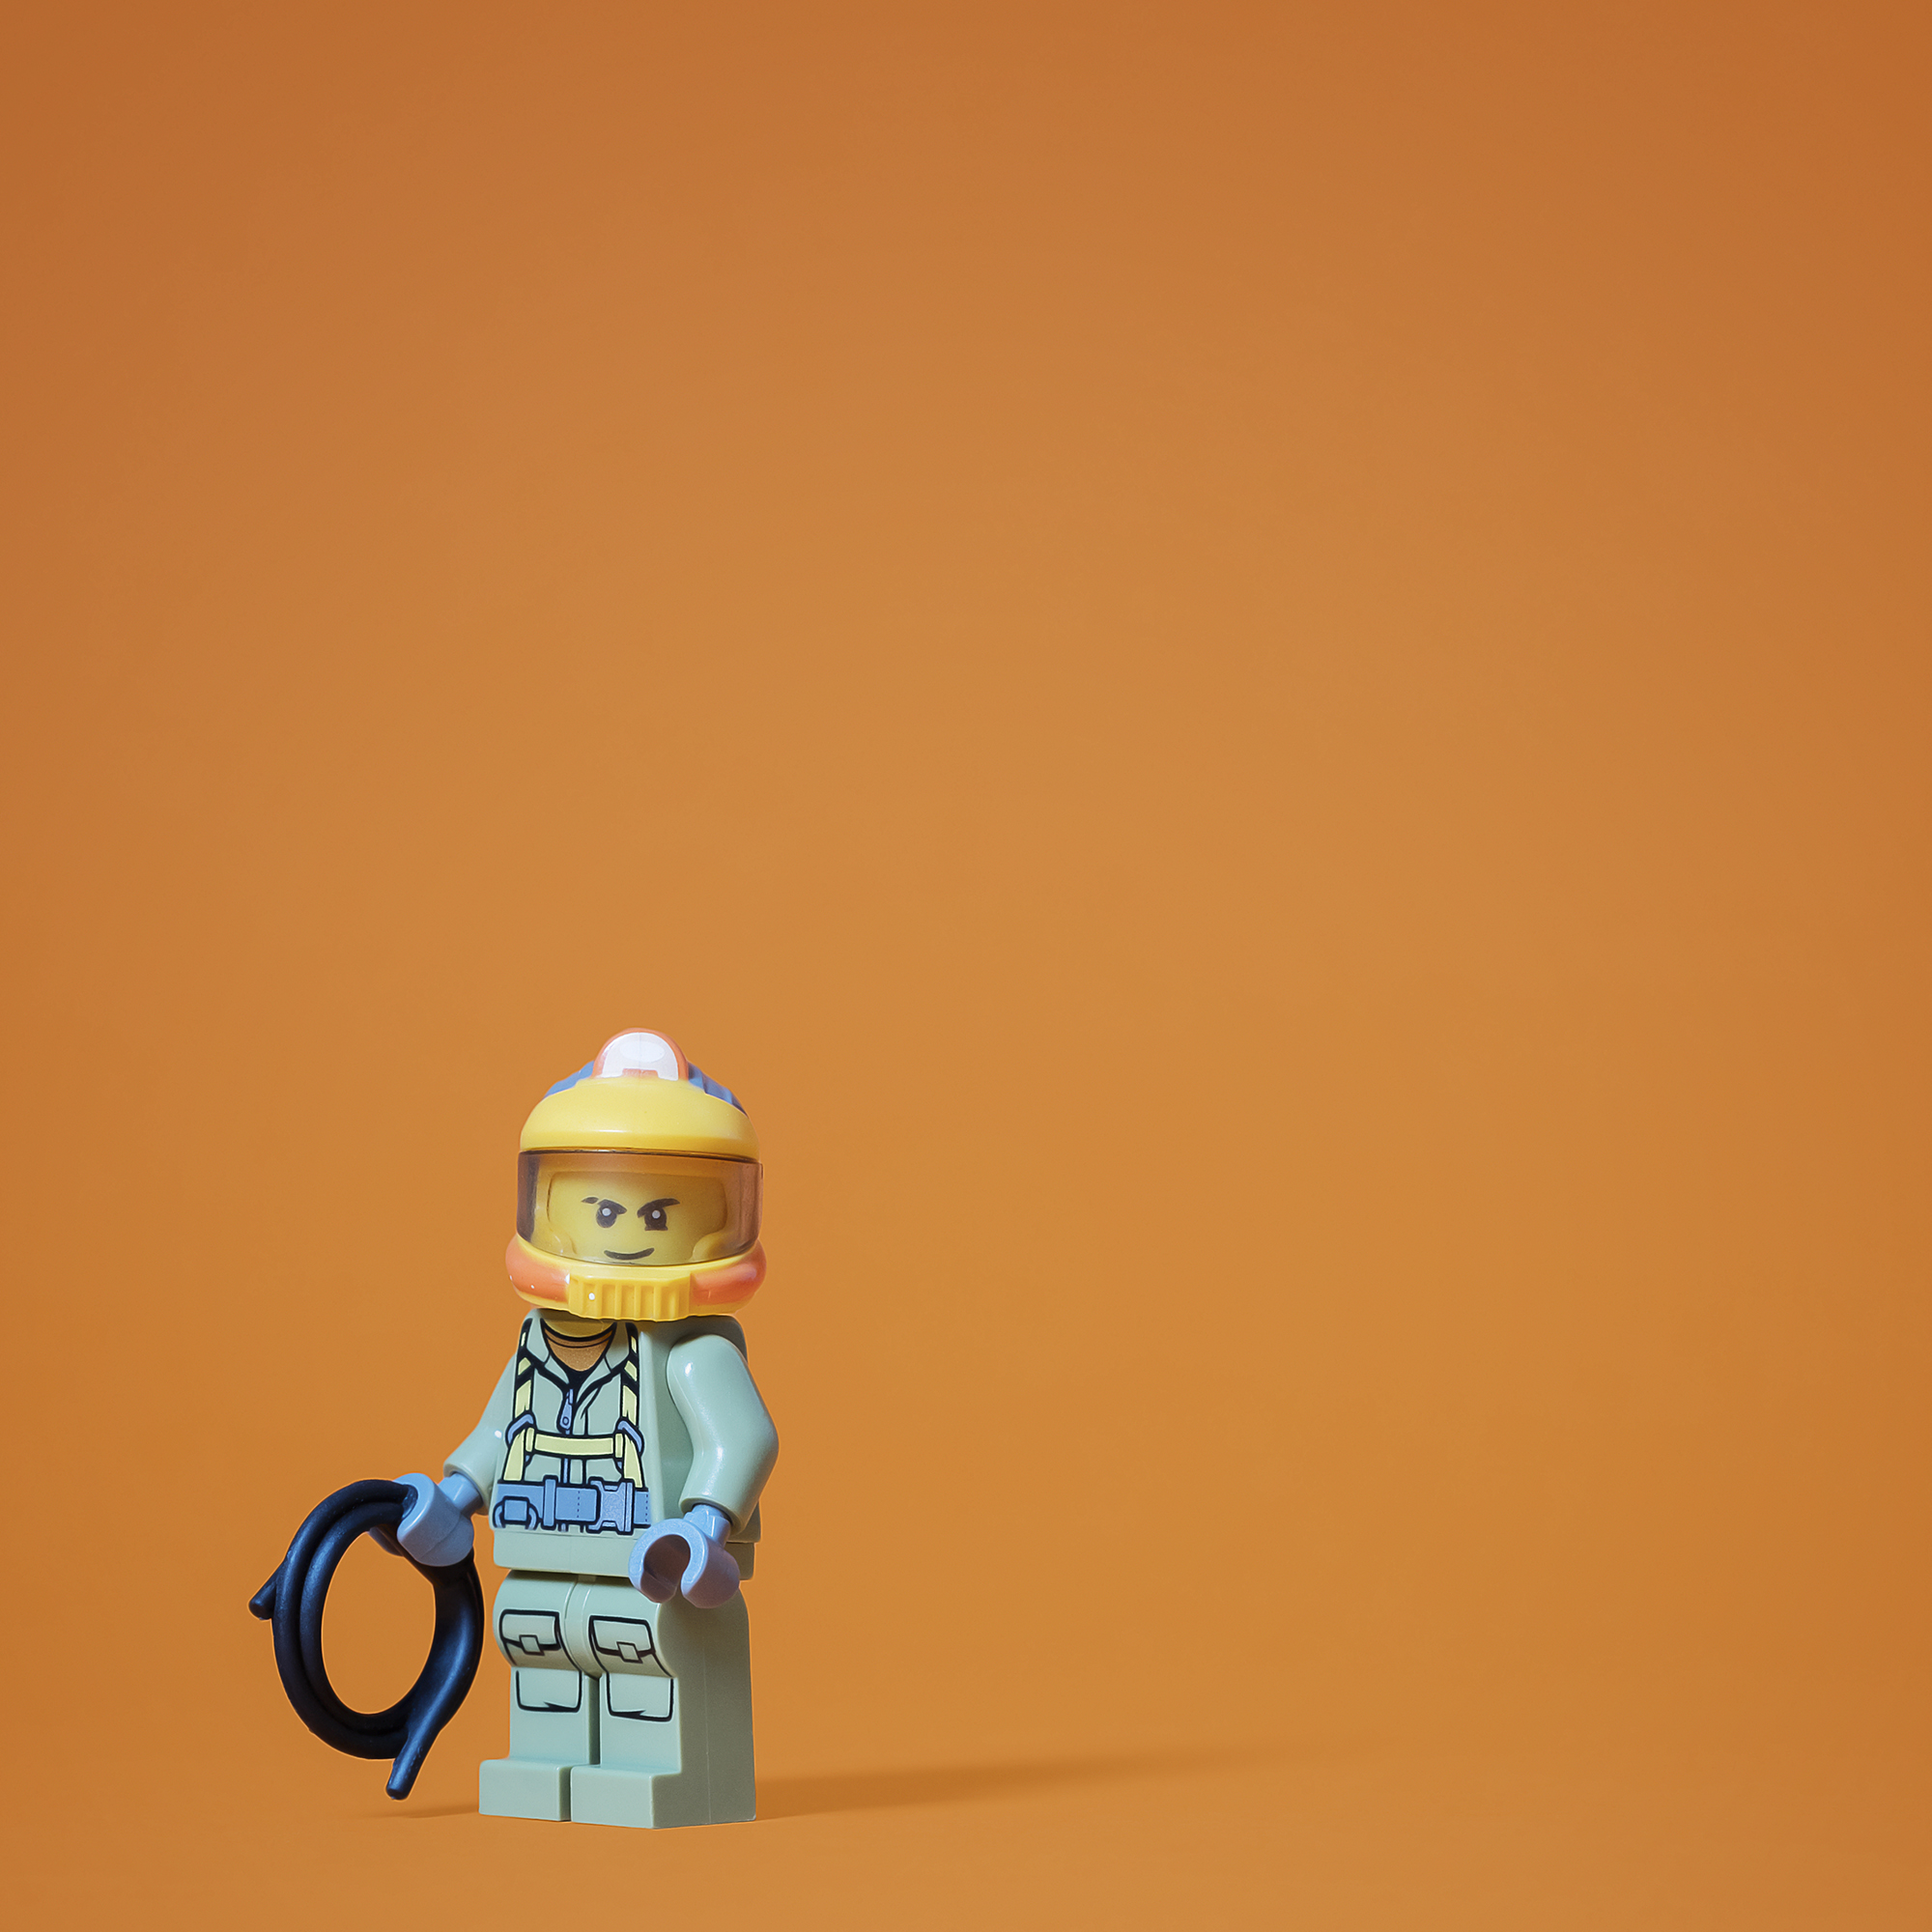 Lego_Photography_Personal_Project_03.jpg